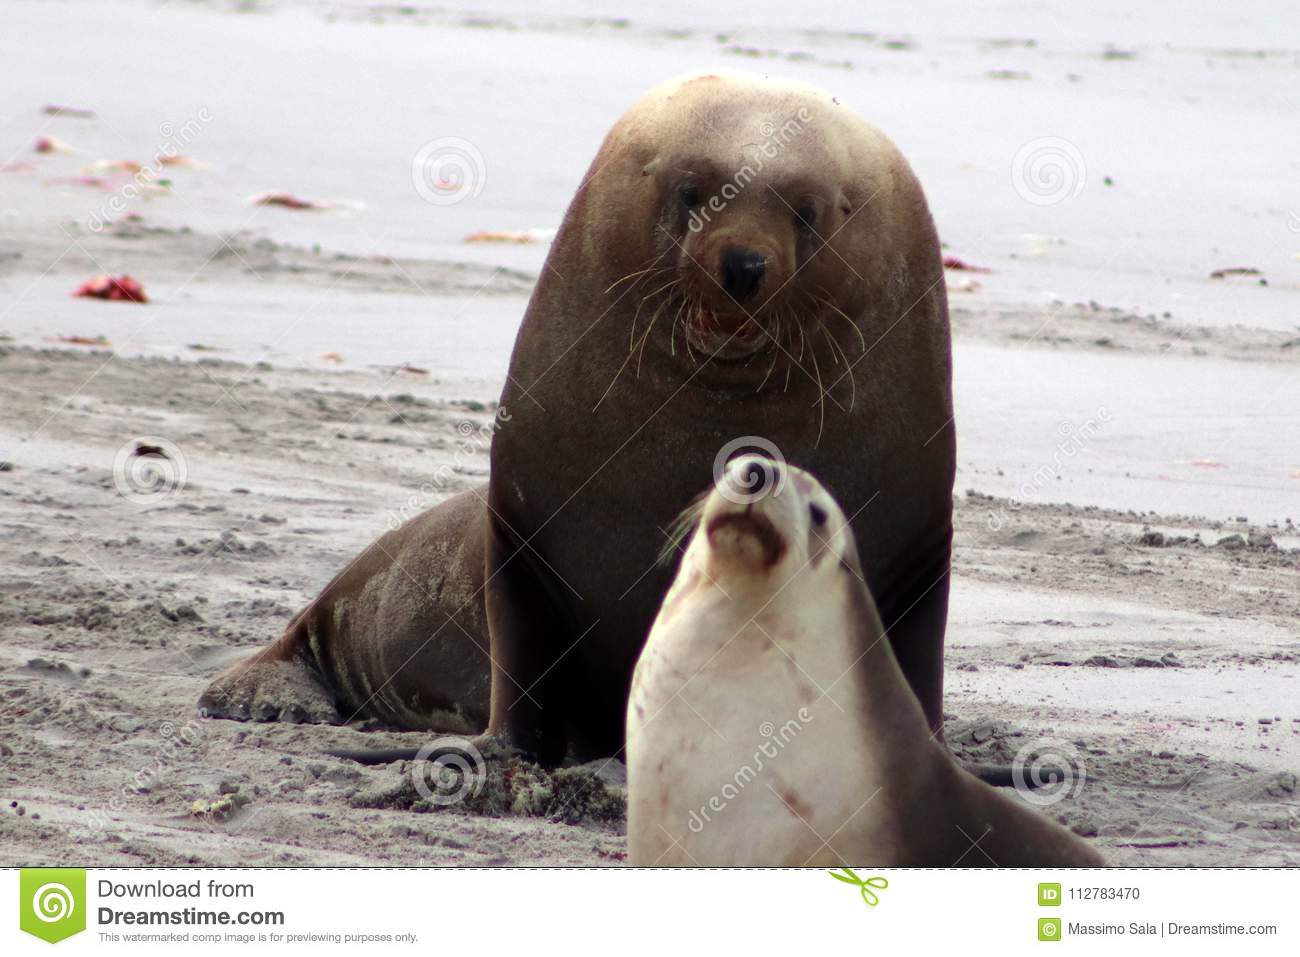 f25be2177 A dominant adult male Australian Sea Lion in Seal Bay ,South Australia